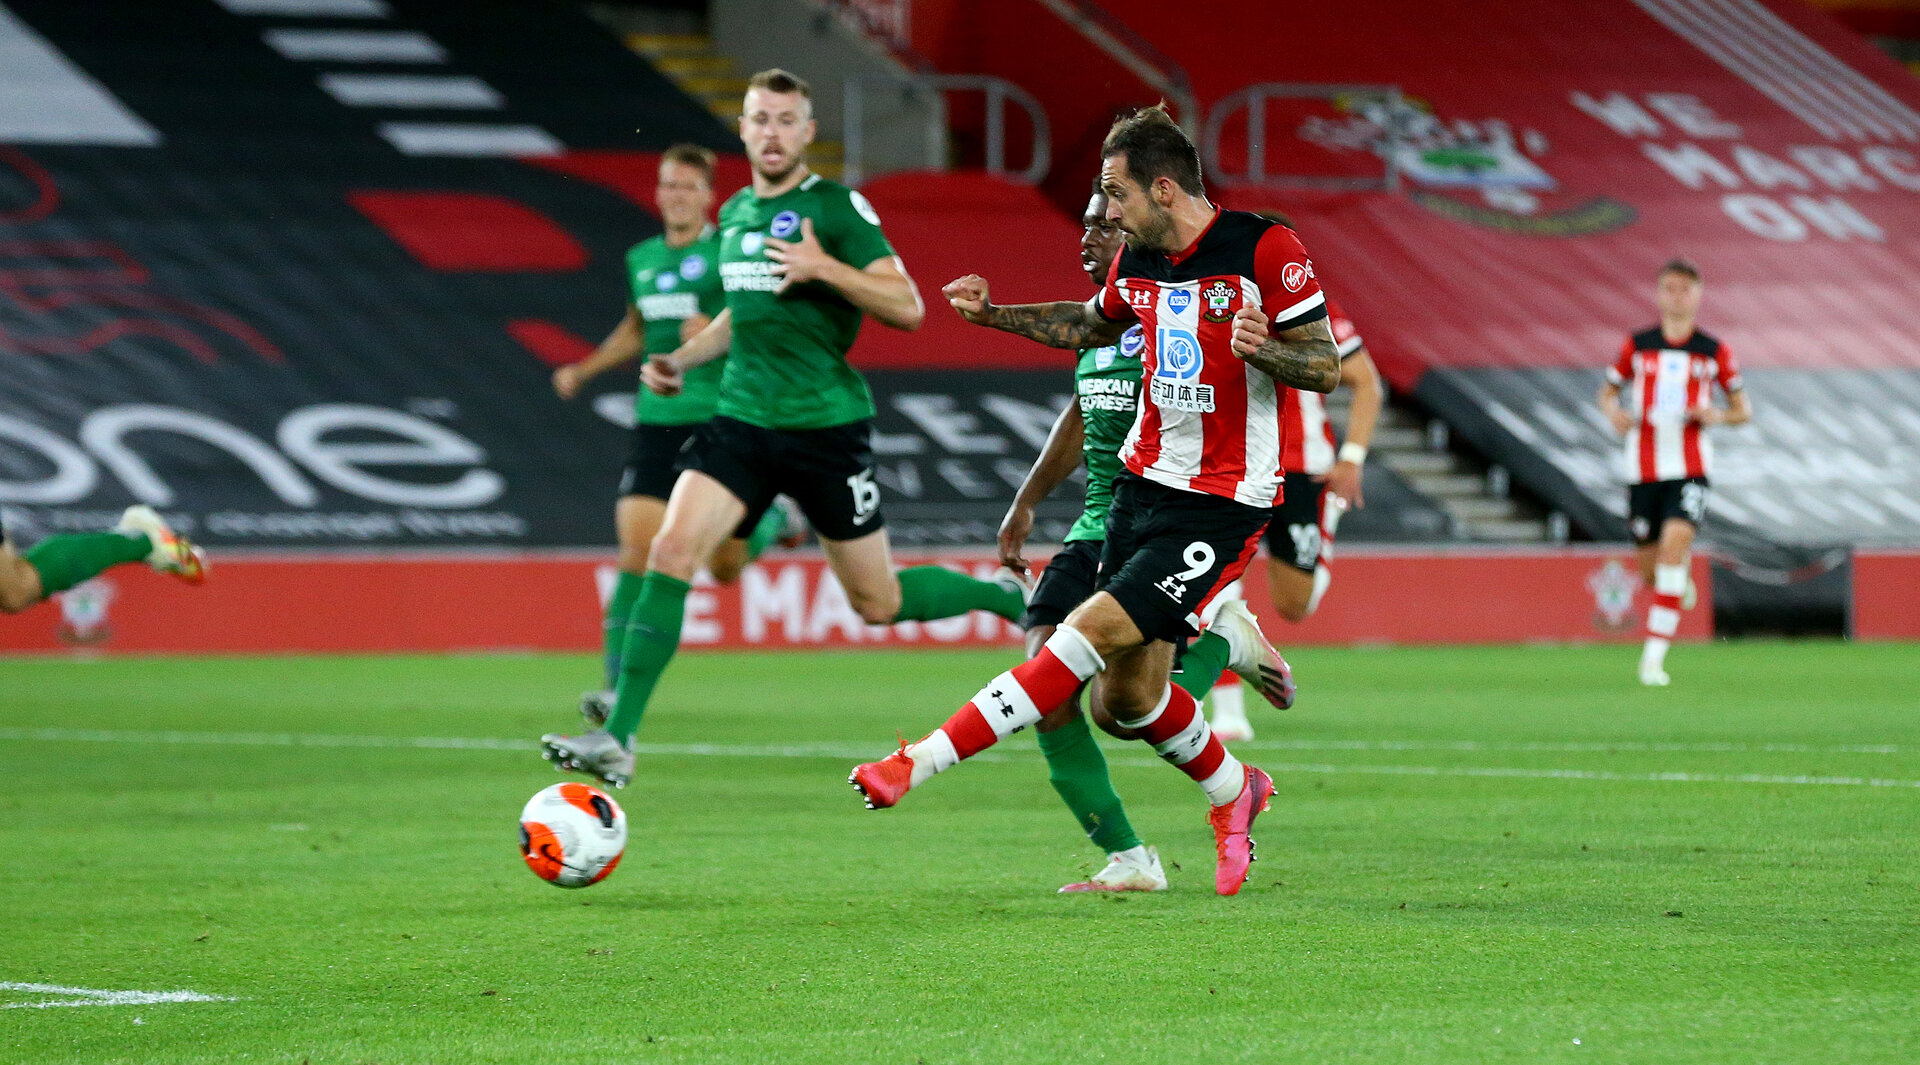 SOUTHAMPTON, ENGLAND - JULY 16: Danny Ings of Southampton scores during the Premier League match between Southampton FC and Brighton & Hove Albion at St Mary's Stadium on July 16, 2020 in Southampton, United Kingdom. Football Stadiums around Europe remain empty due to the Coronavirus Pandemic as Government social distancing laws prohibit fans inside venues resulting in all fixtures being played behind closed doors. (Photo by Matt Watson/Southampton FC via Getty Images)